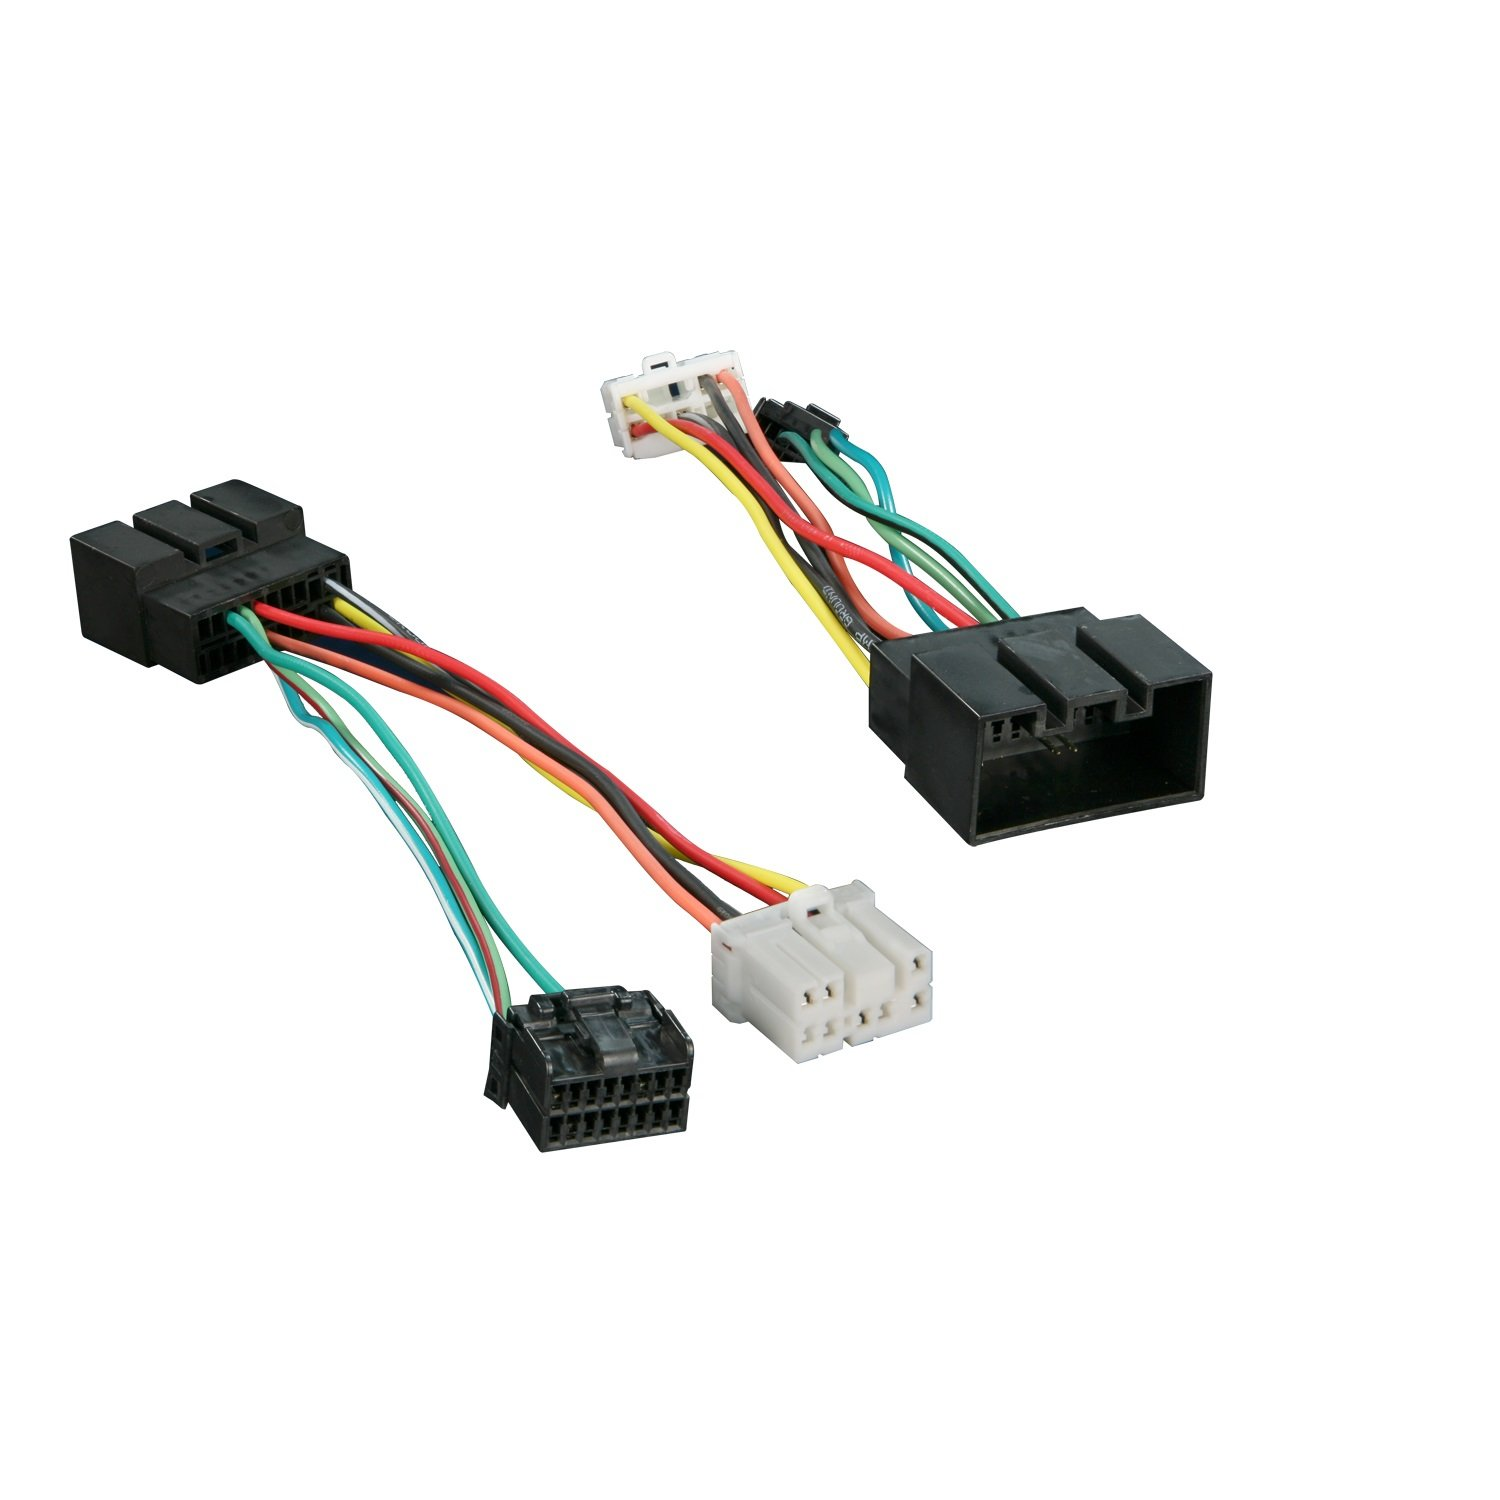 Aftermarket Stereo Wiring Harness Adapters Schematic Diagrams Radio Adapter 1761 Furthermore Toyota Walmart Trusted U2022 Car